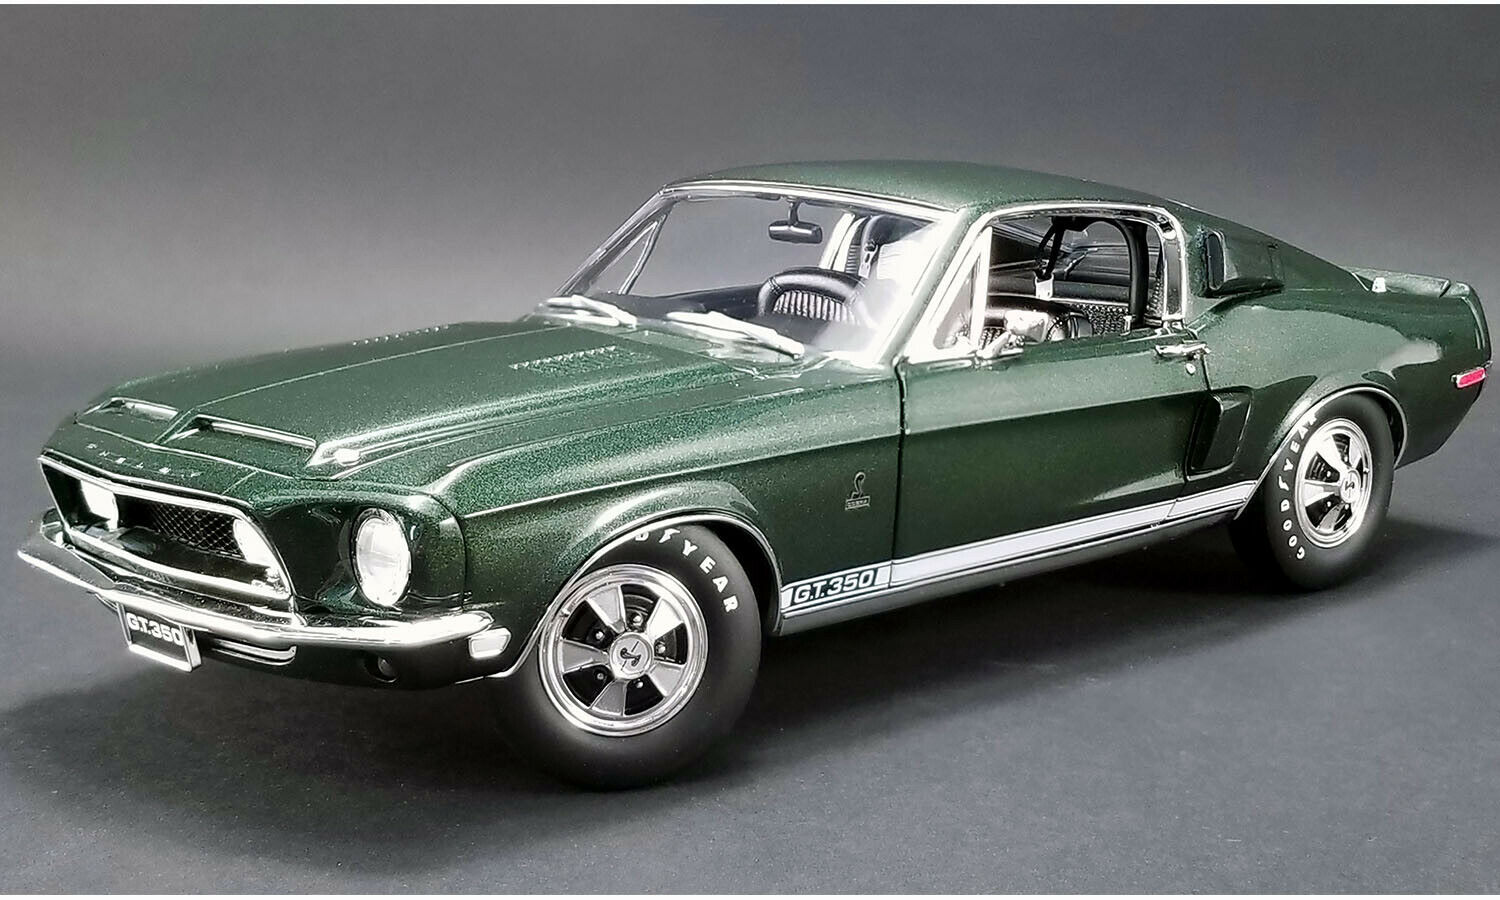 ACME 1968 Ford Mustang Shelby GT350 Hertz verde 1 18 Scale Replica A1801825